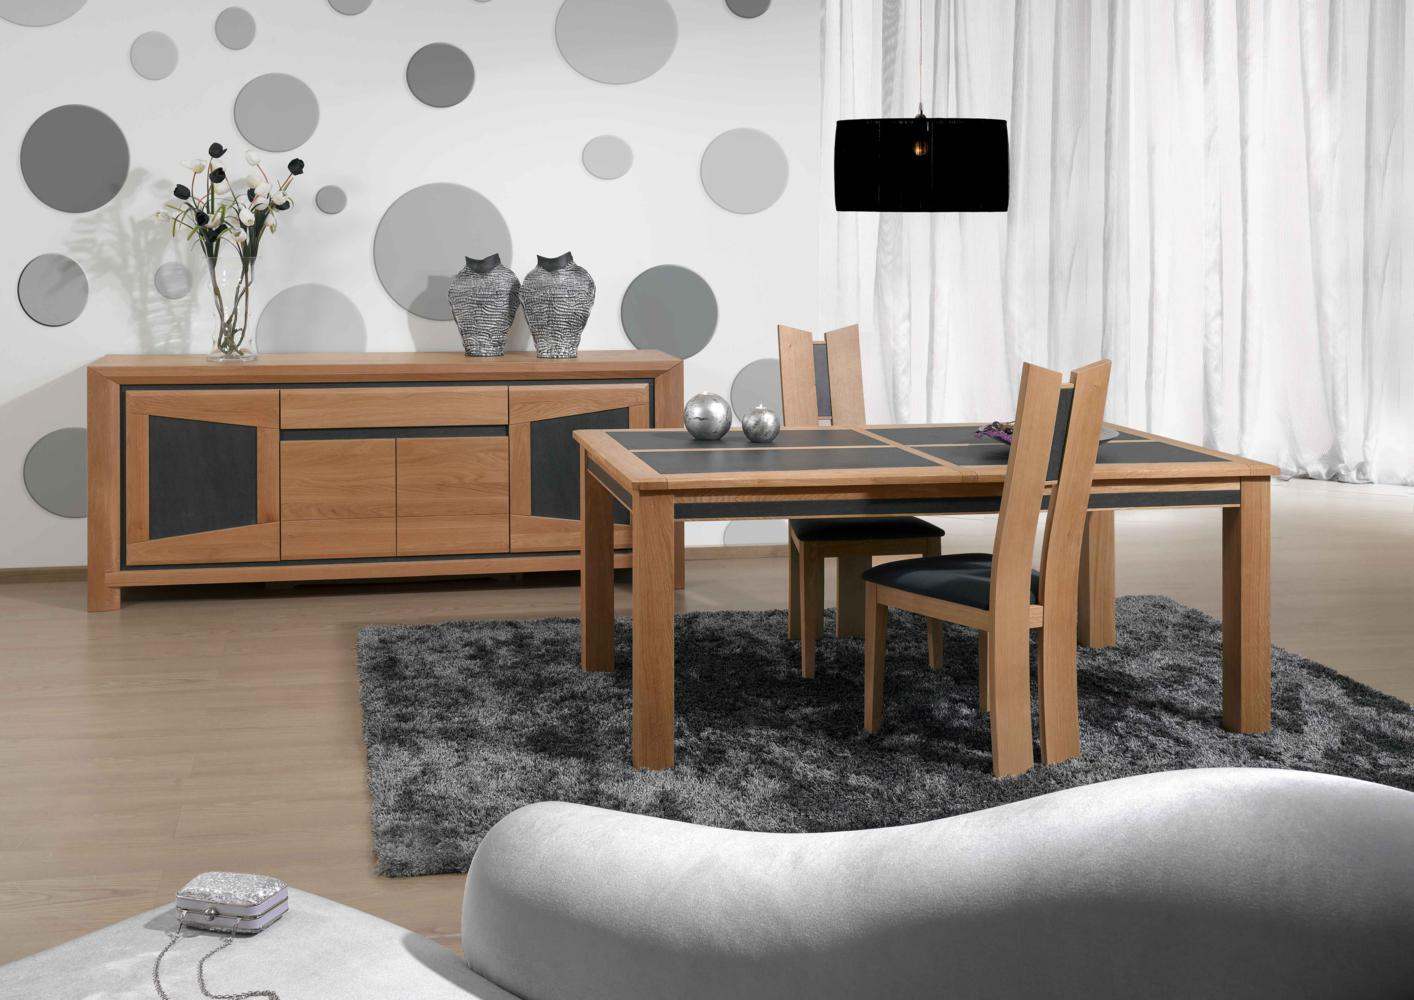 acheter votre chaise contemporaine chene massif chez simeuble. Black Bedroom Furniture Sets. Home Design Ideas